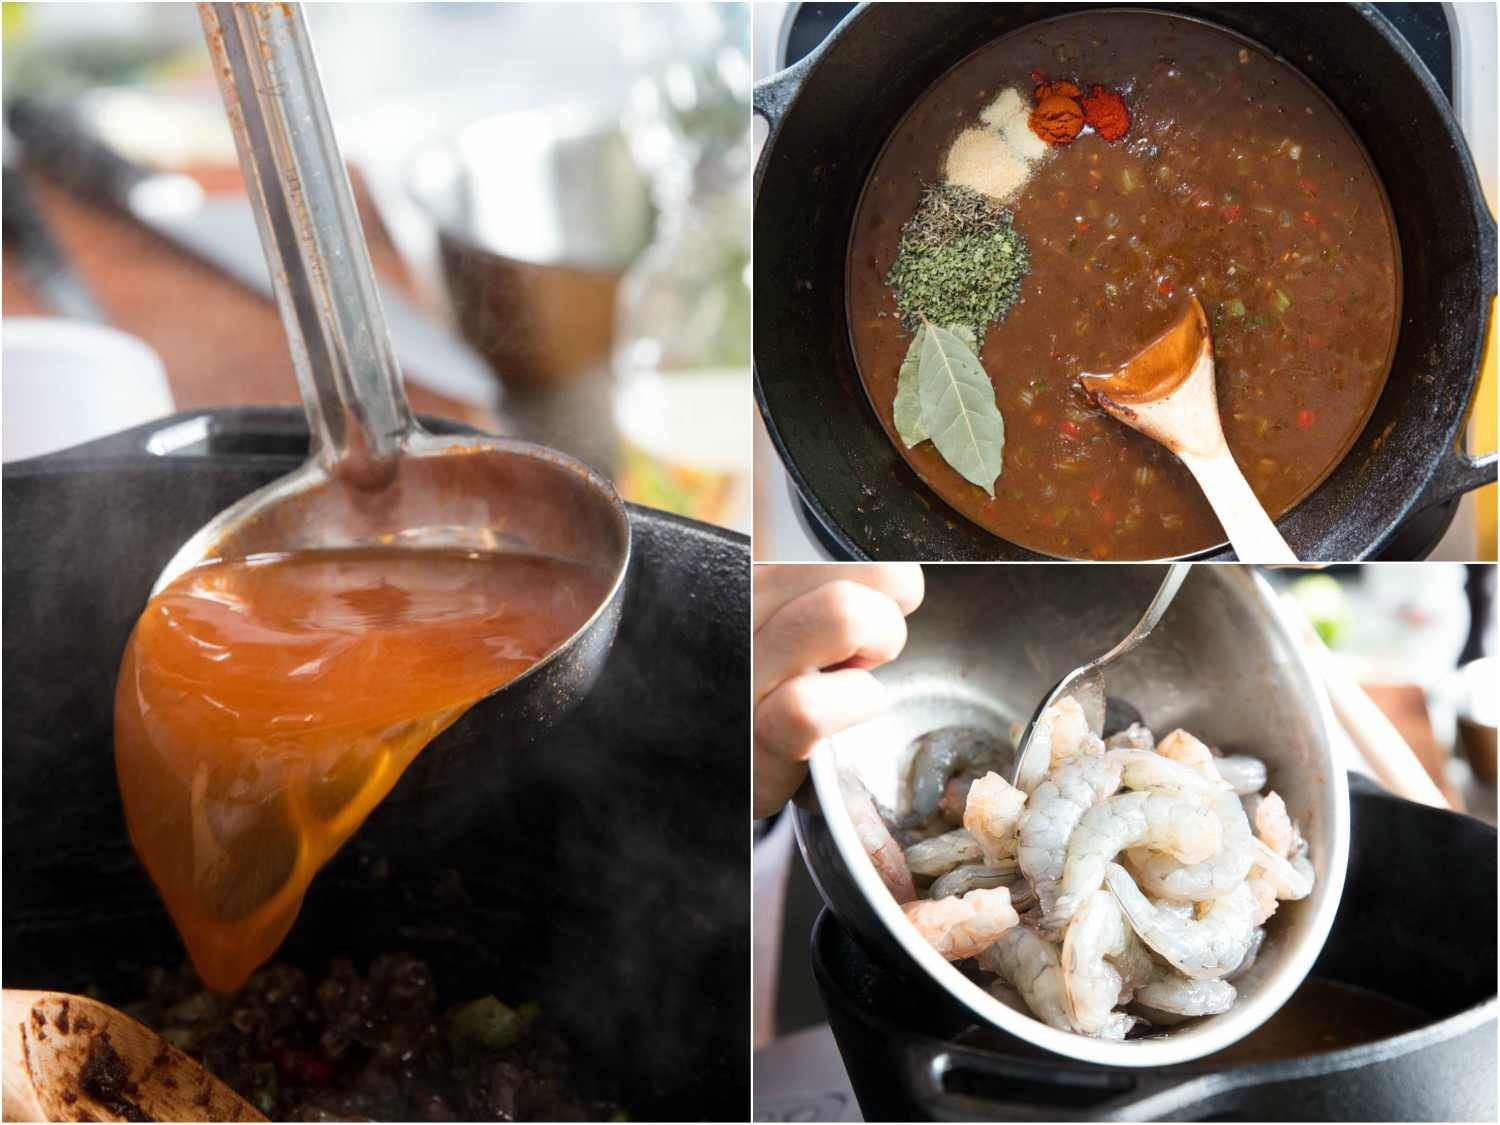 Collage: Adding shrimp stock to the pot, adding spices and seasonings to the sauce, stirring in the shrimp